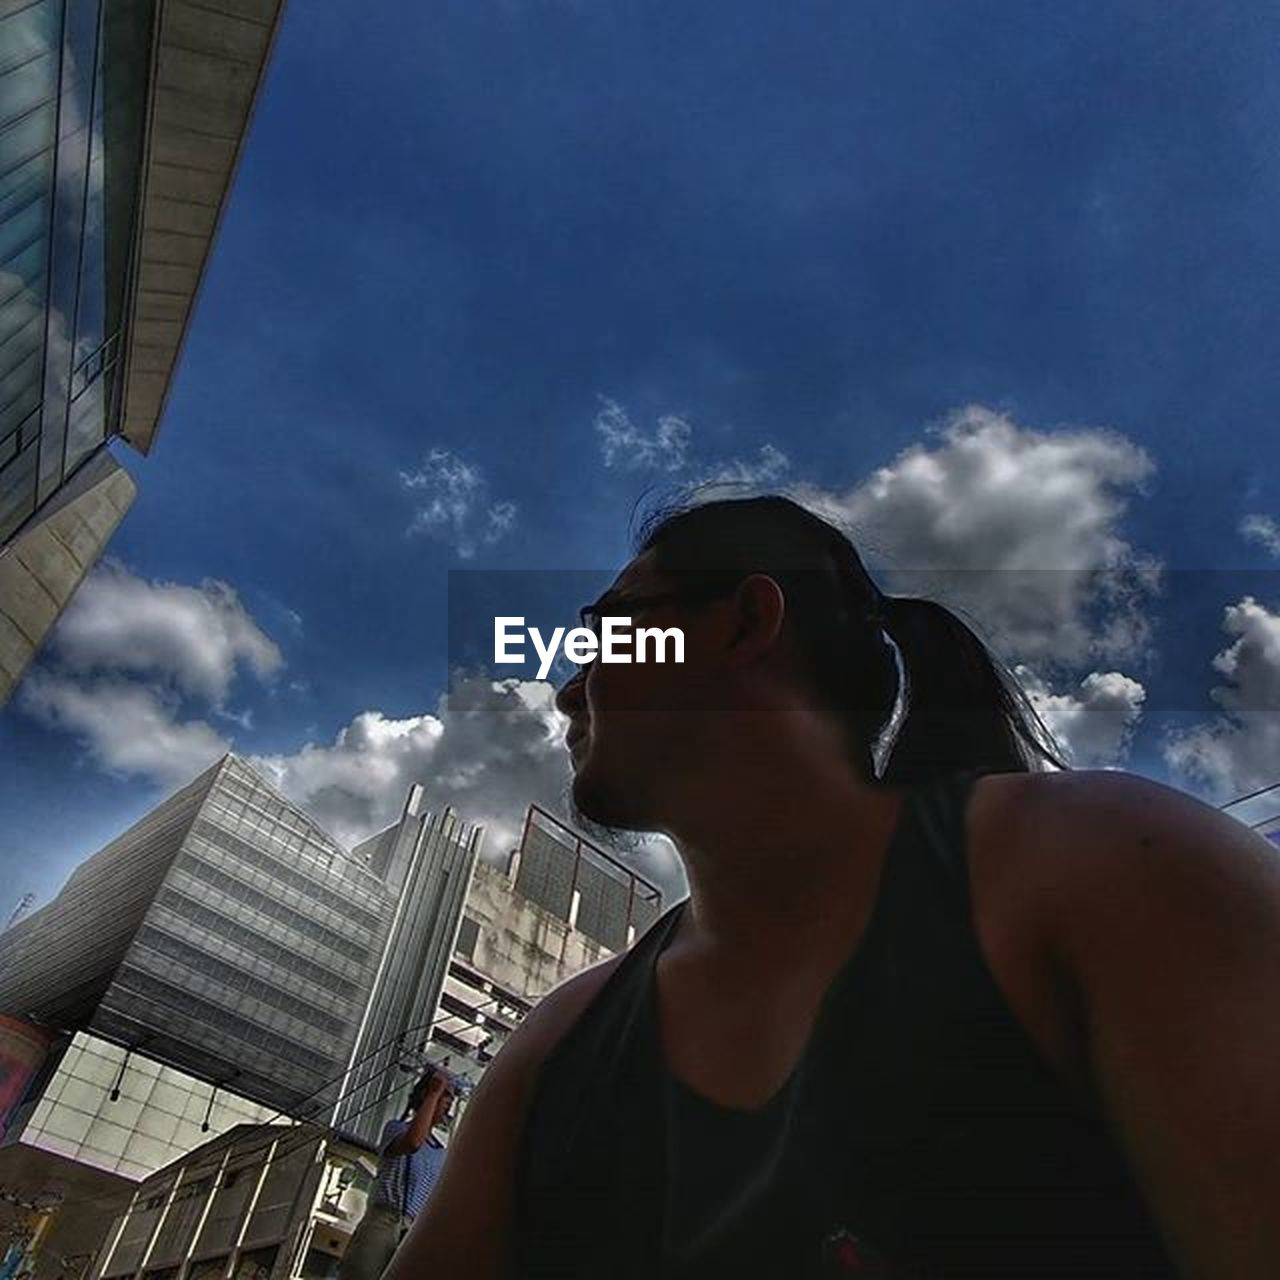 skyscraper, building exterior, architecture, sky, cloud - sky, city, built structure, outdoors, one person, young adult, low angle view, cityscape, headshot, real people, day, urban skyline, young women, adult, people, adults only